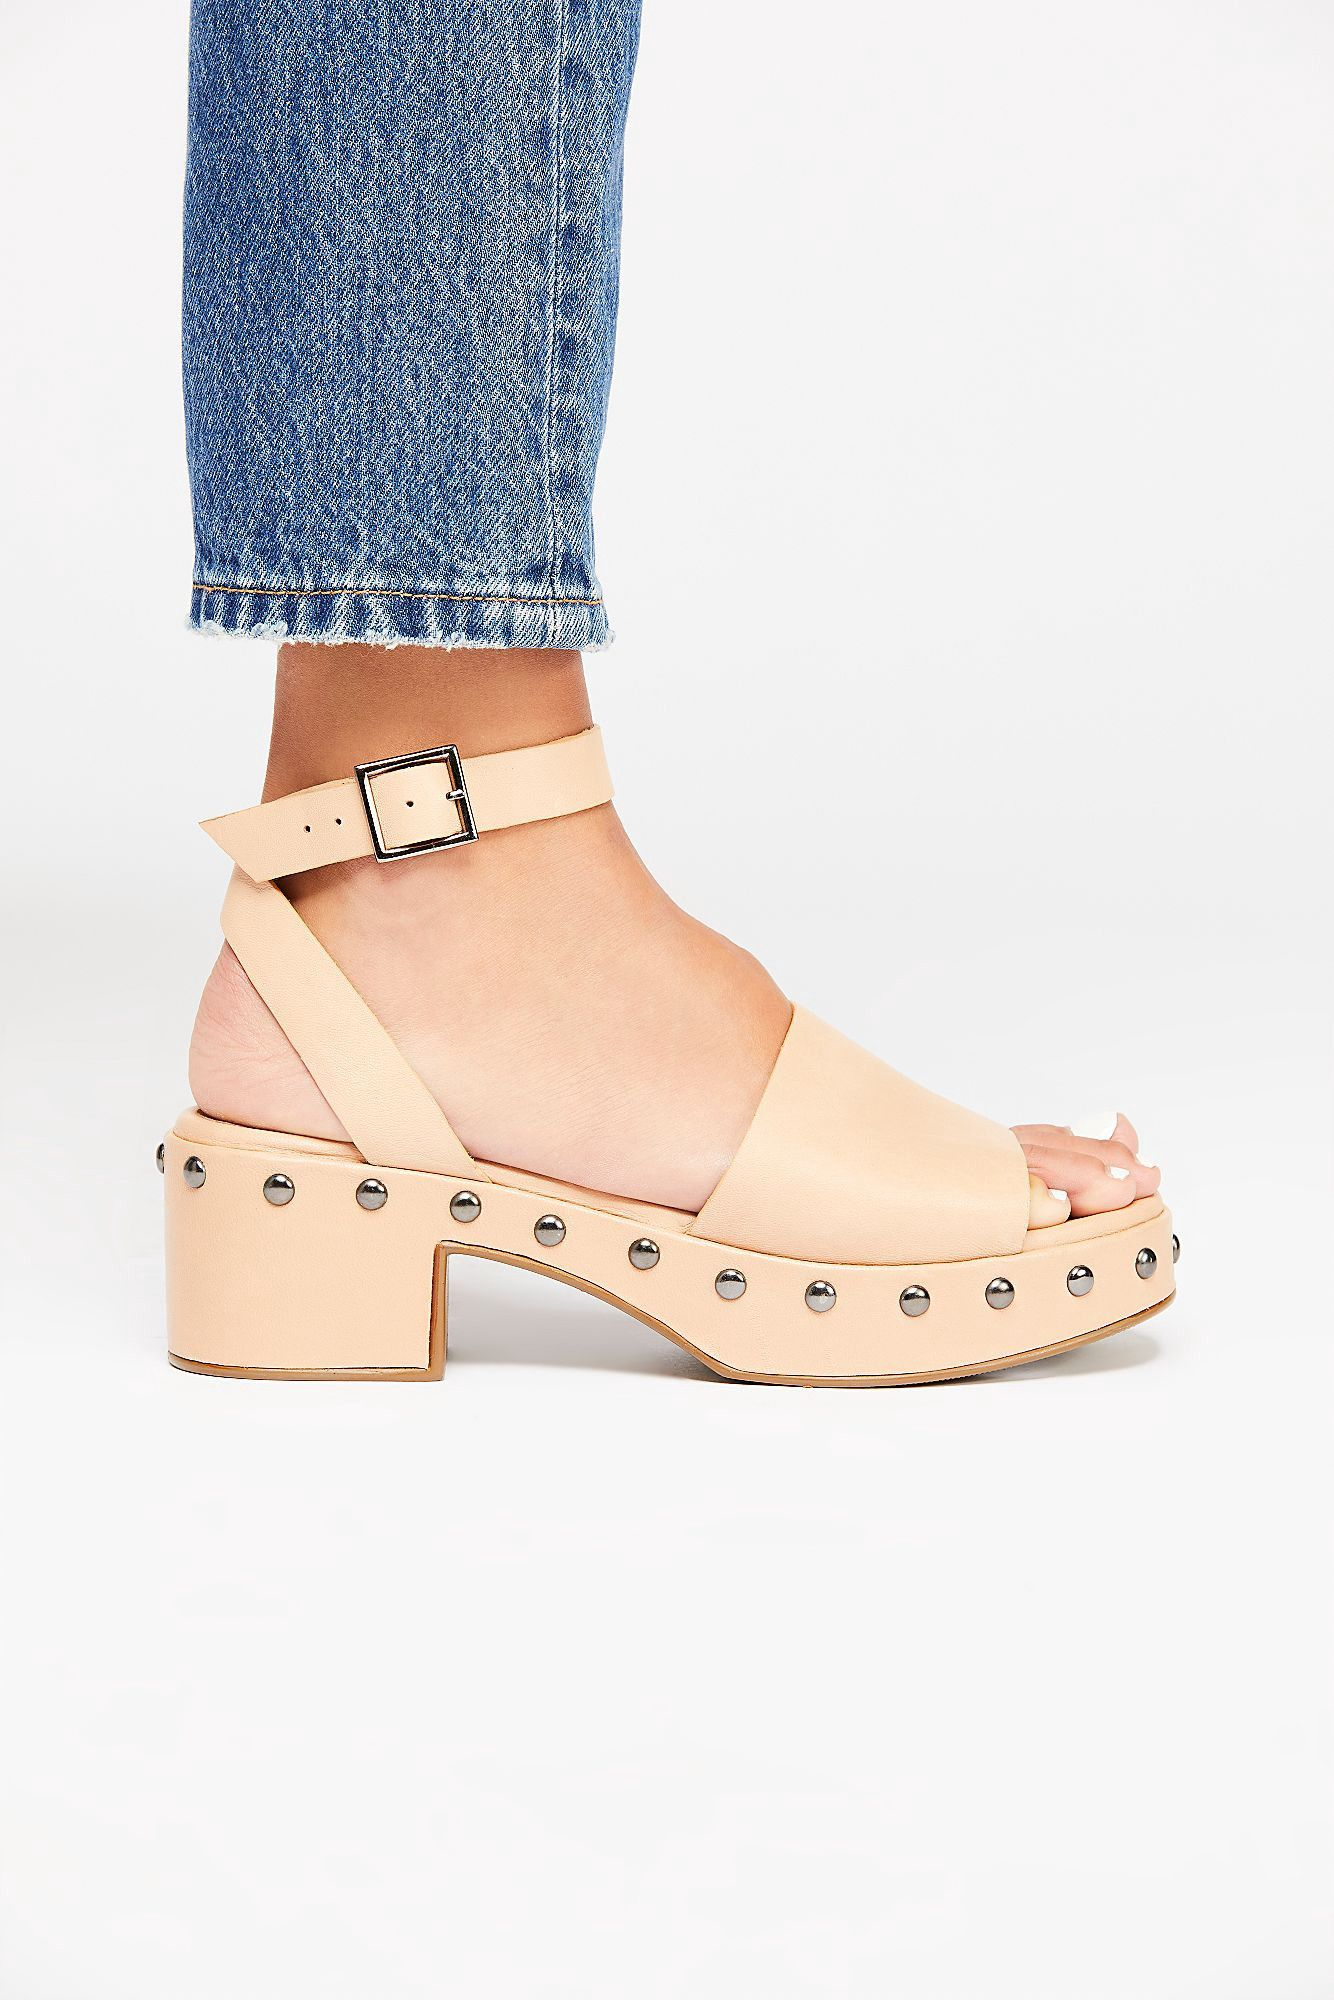 9677d869b91 Free People Stand By Me Platform Sandal - Vacchetta Leather 7.5